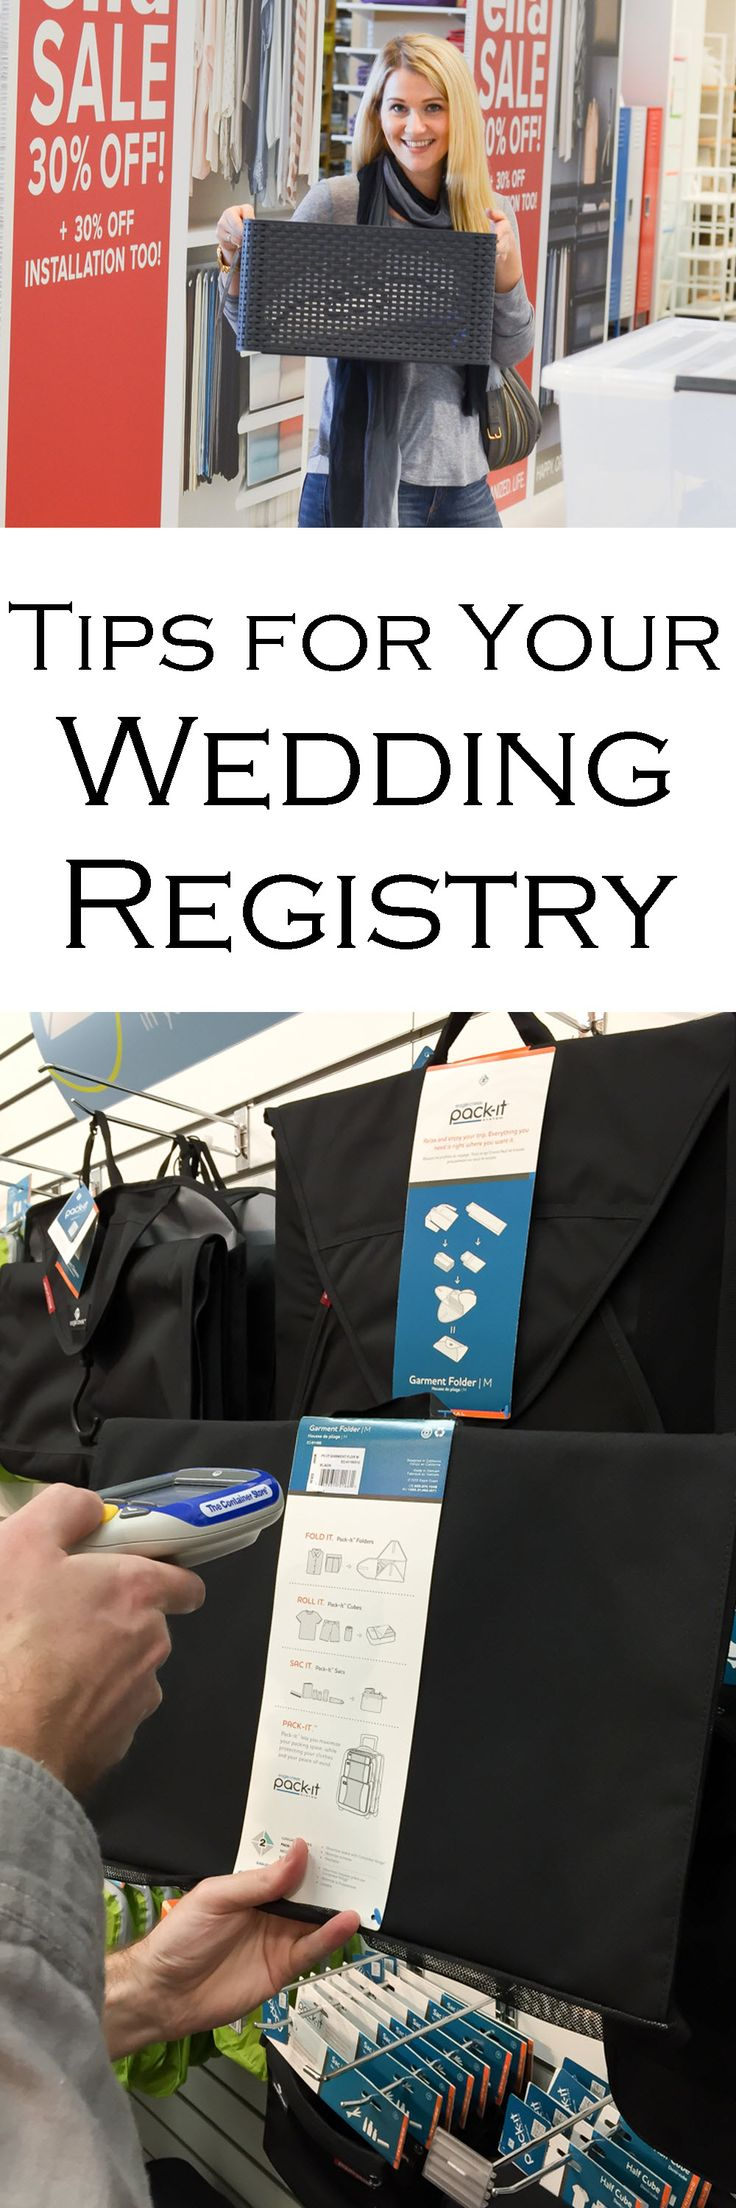 printable bridal registry list%0A How to Do a Wedding Registry   Wedding Registry Tips